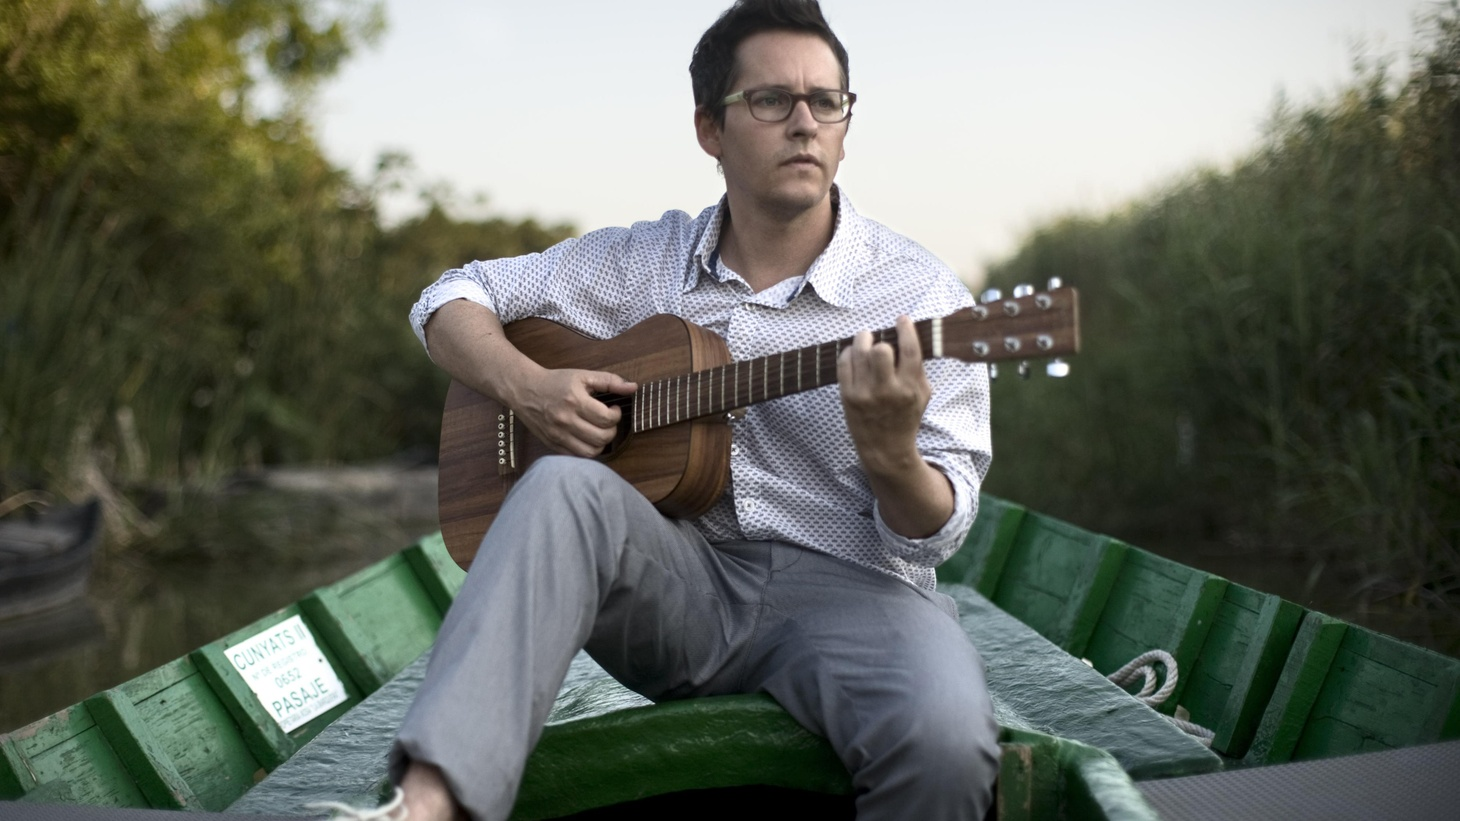 "Sometimes you want to listen to music that transports you to another place, that tells you a short story, and makes your day feel slightly more bright and thoughtful. Josh Rouse's latest record ""El Turista"" offers exactly that type of melodic antidote -- the kind of album that invites you to forget your to-do list and demands your attention."